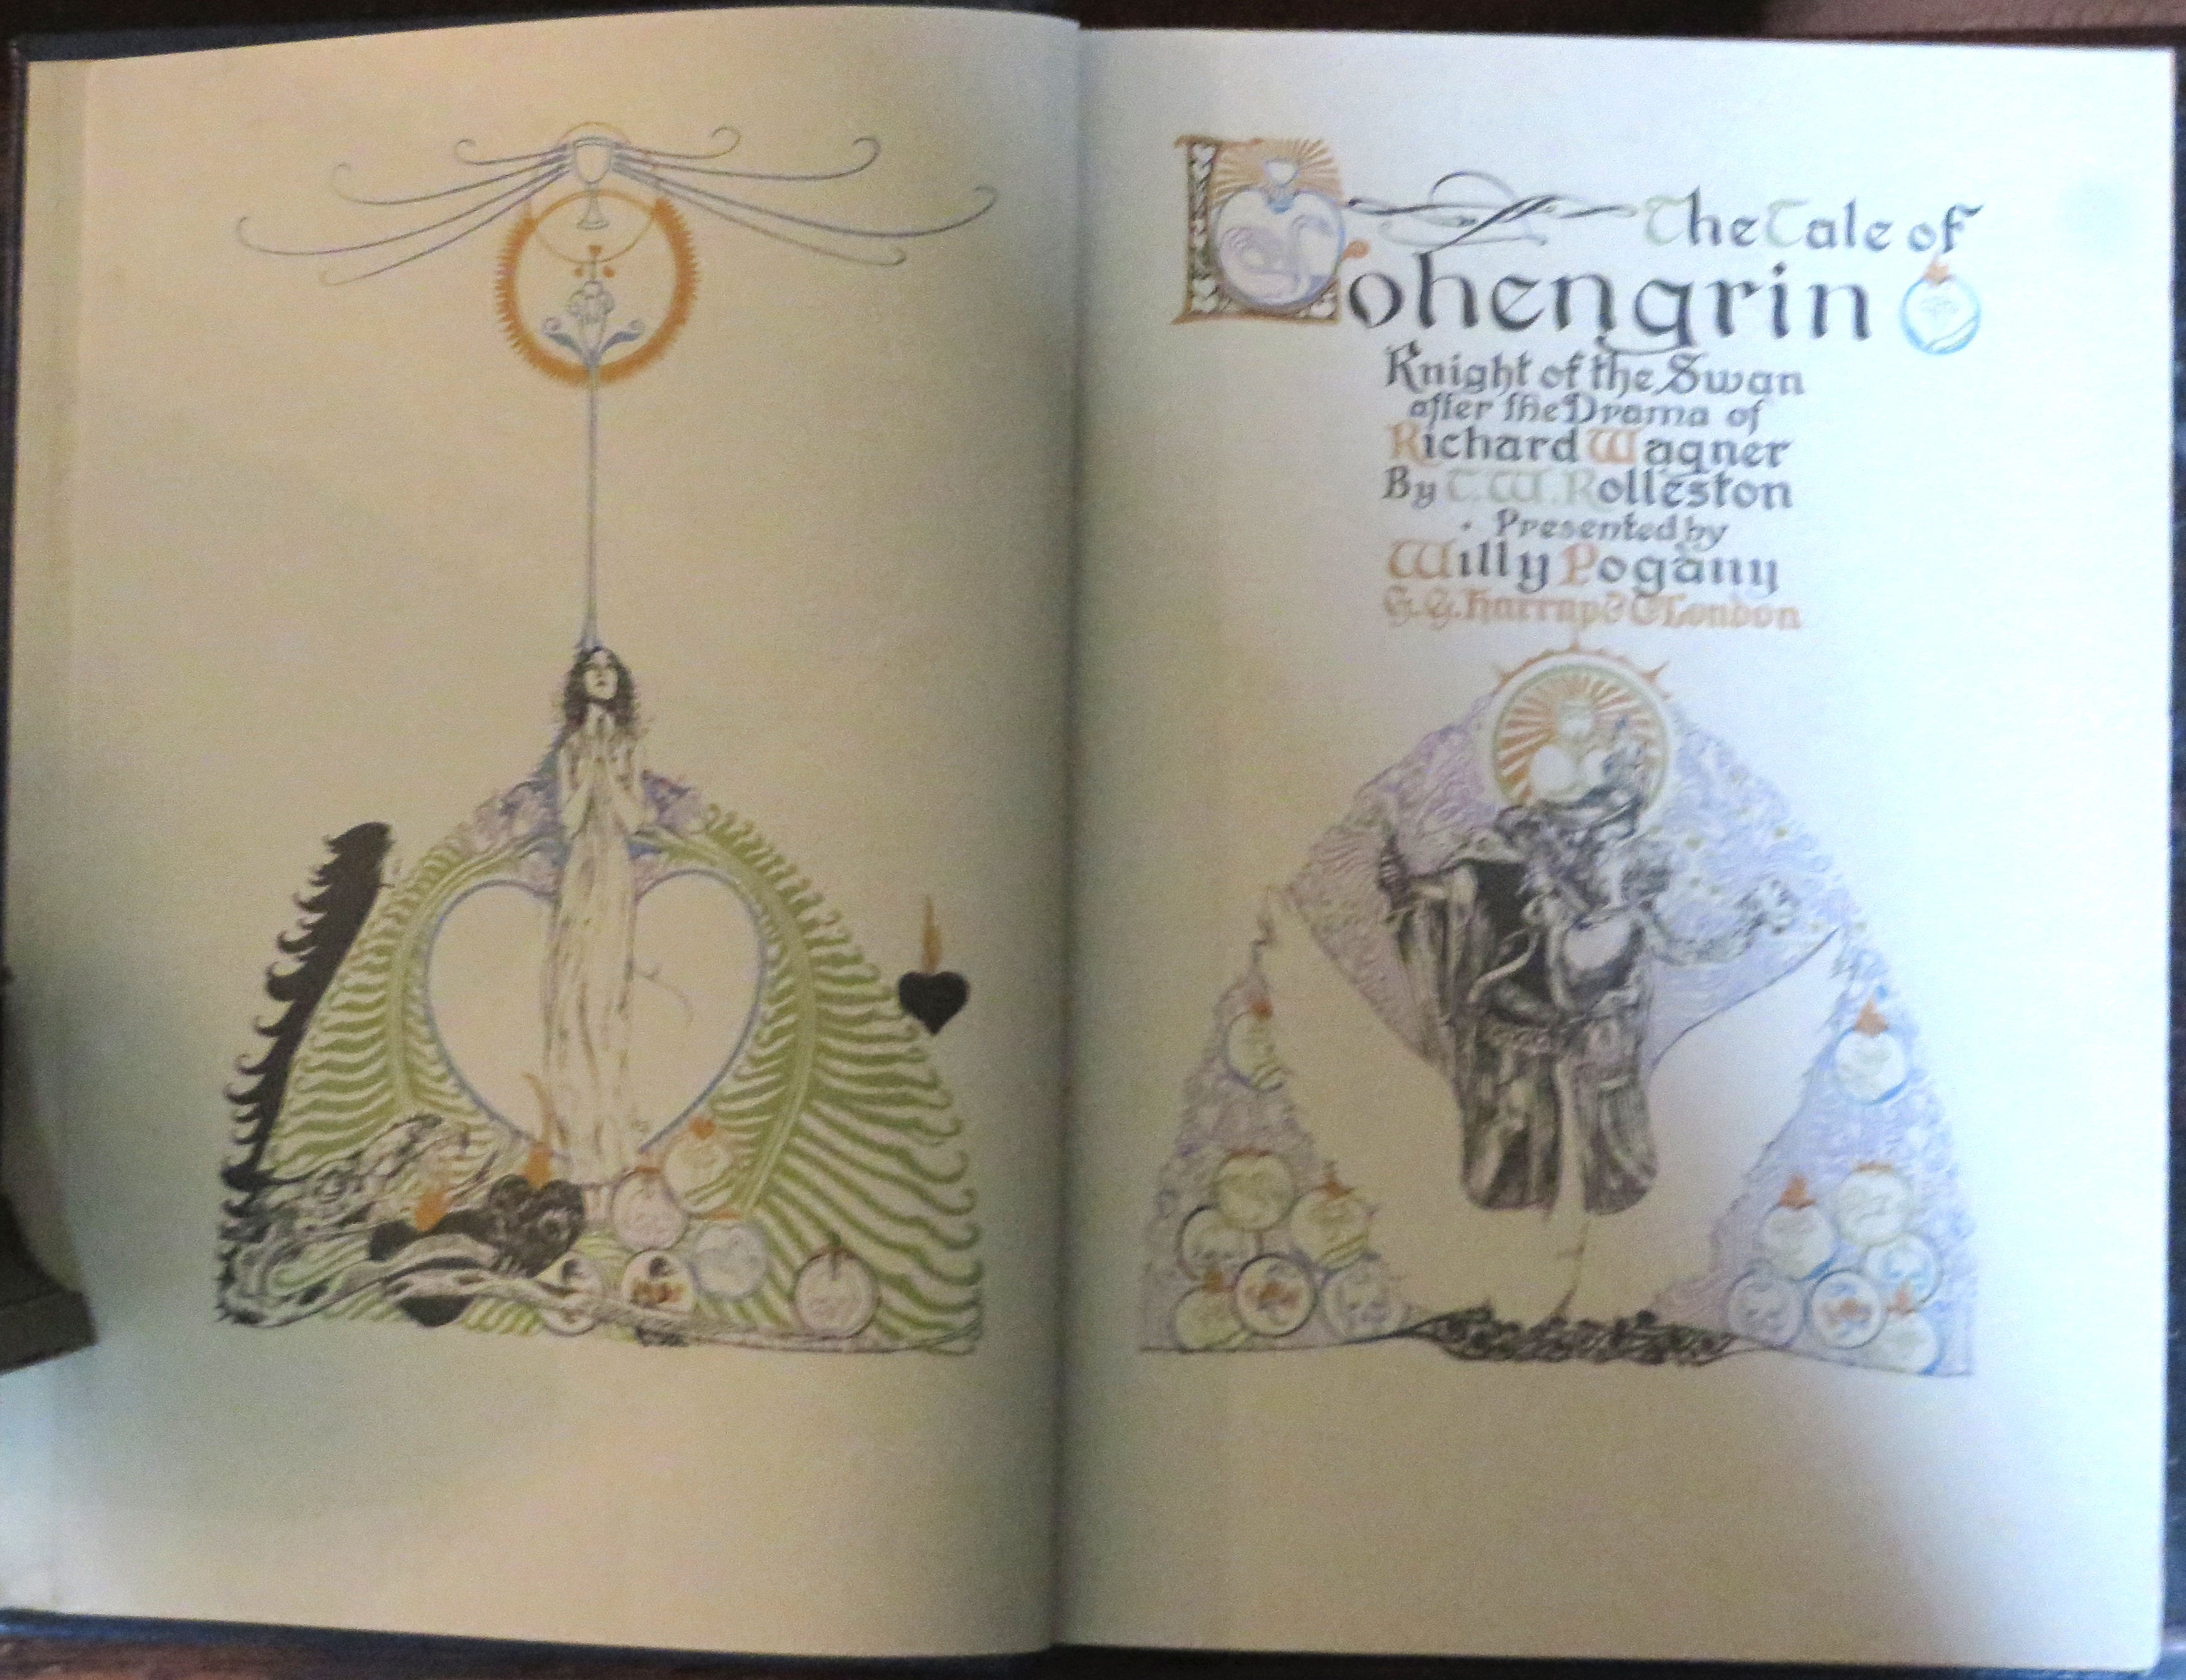 Image for Lohengrin Knight of the Swan, after Drama of Richard Wagner